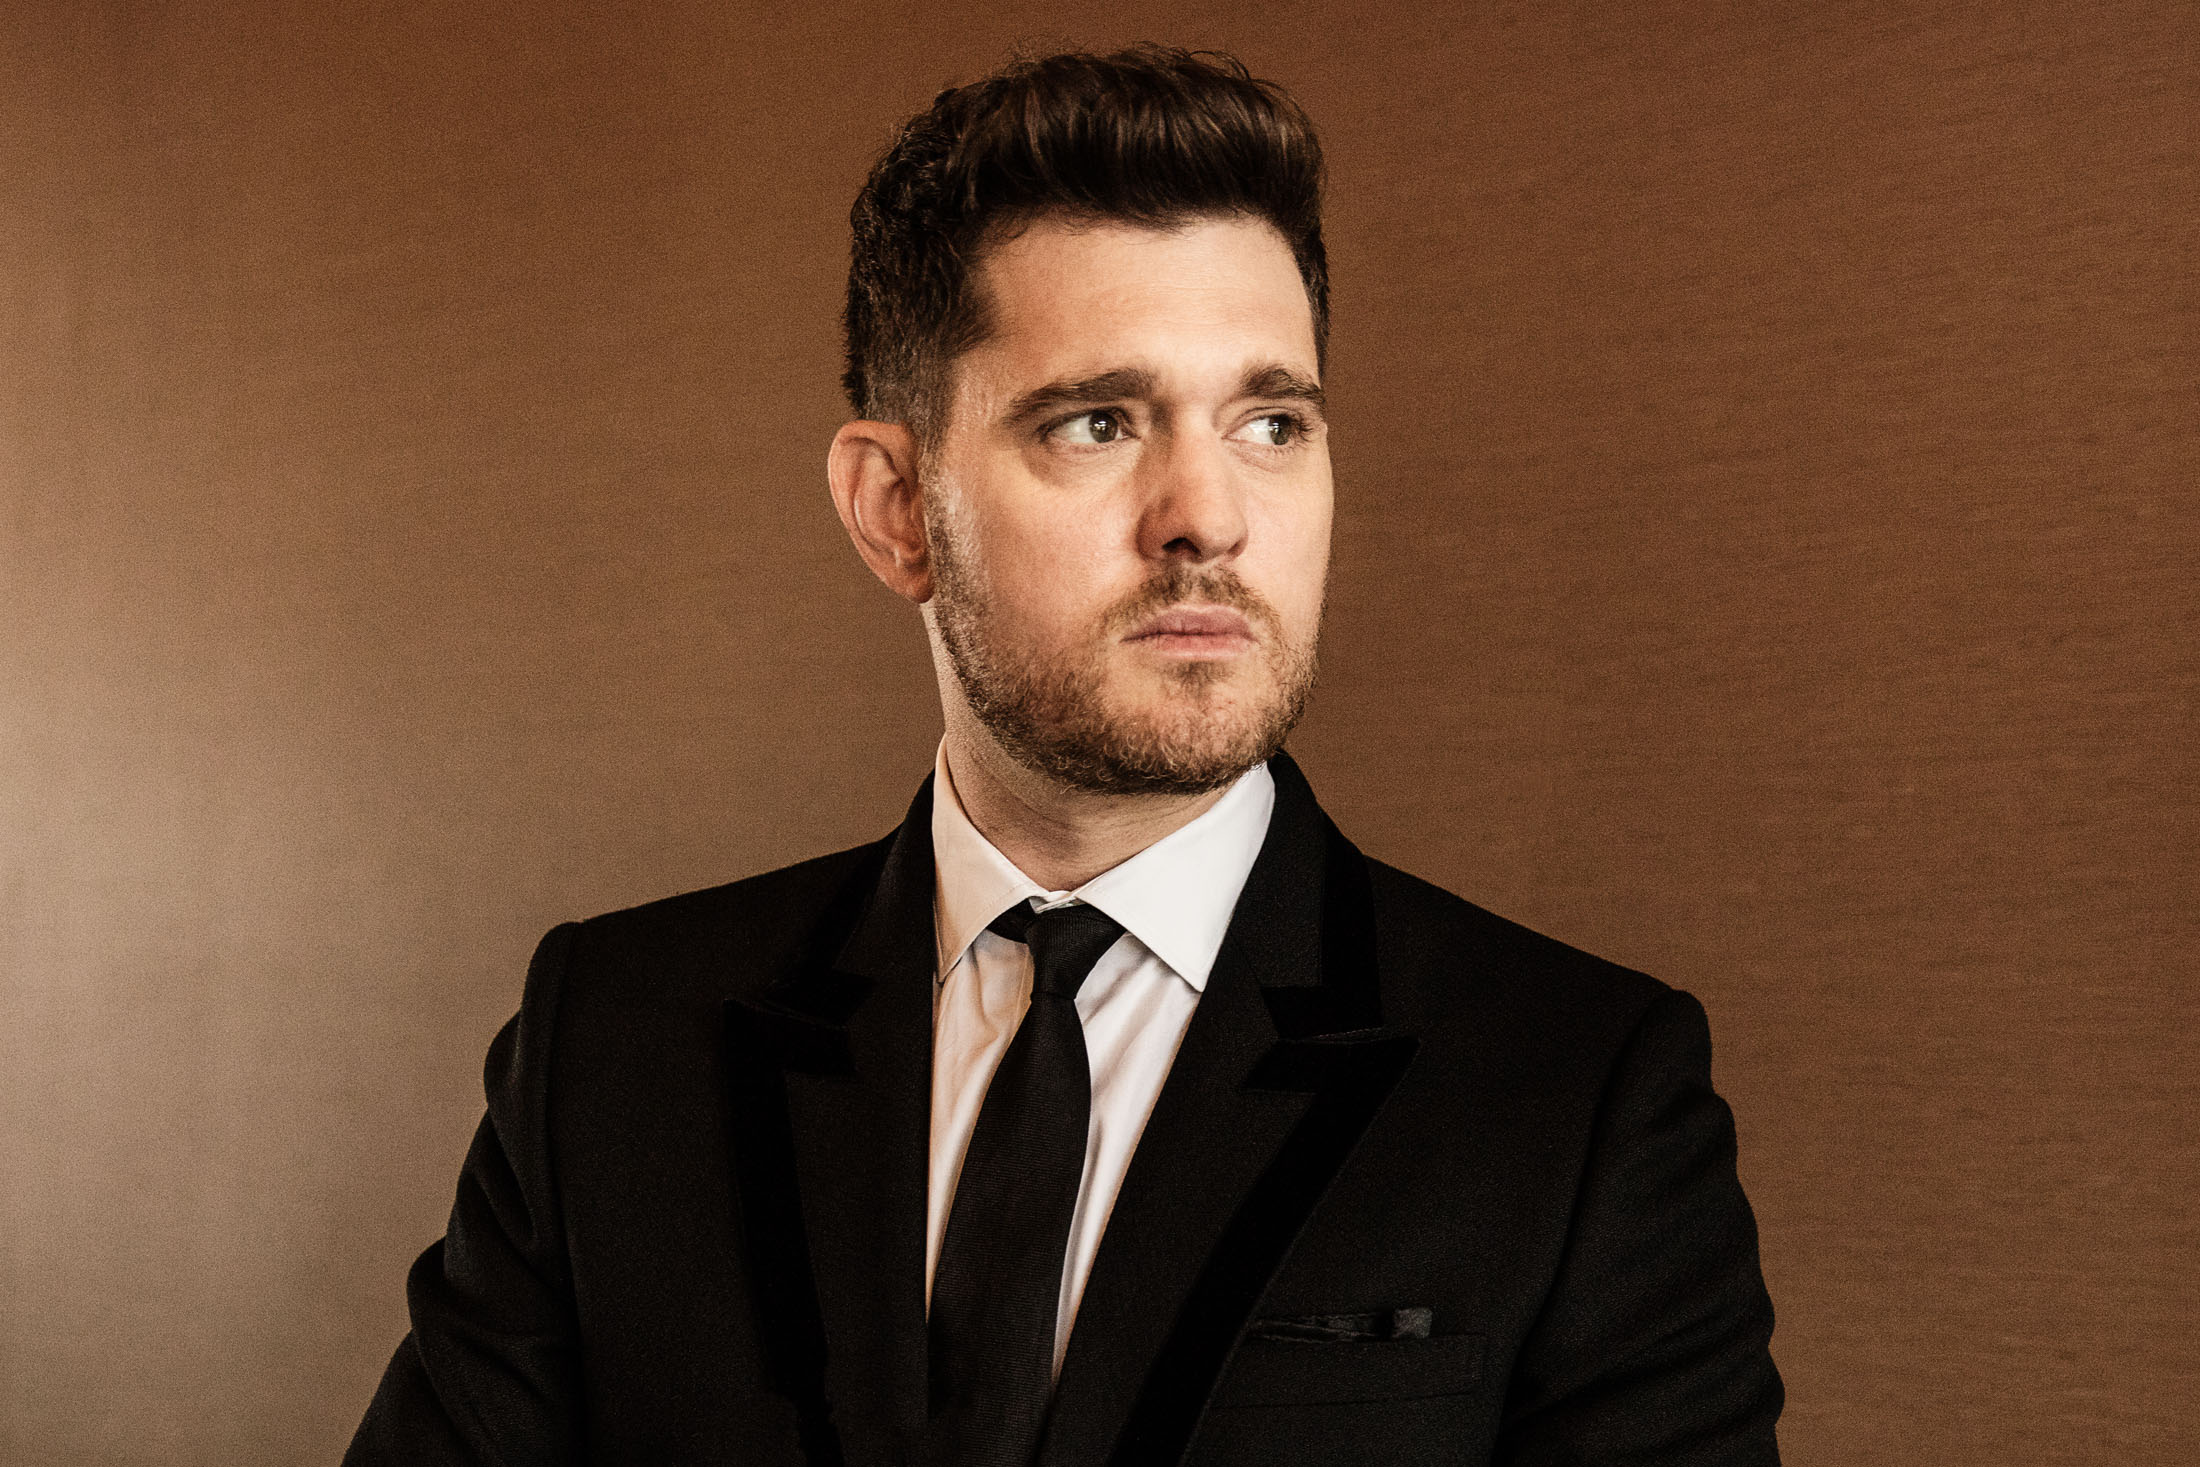 MichaelBuble_GermanGQ-325_Crop2